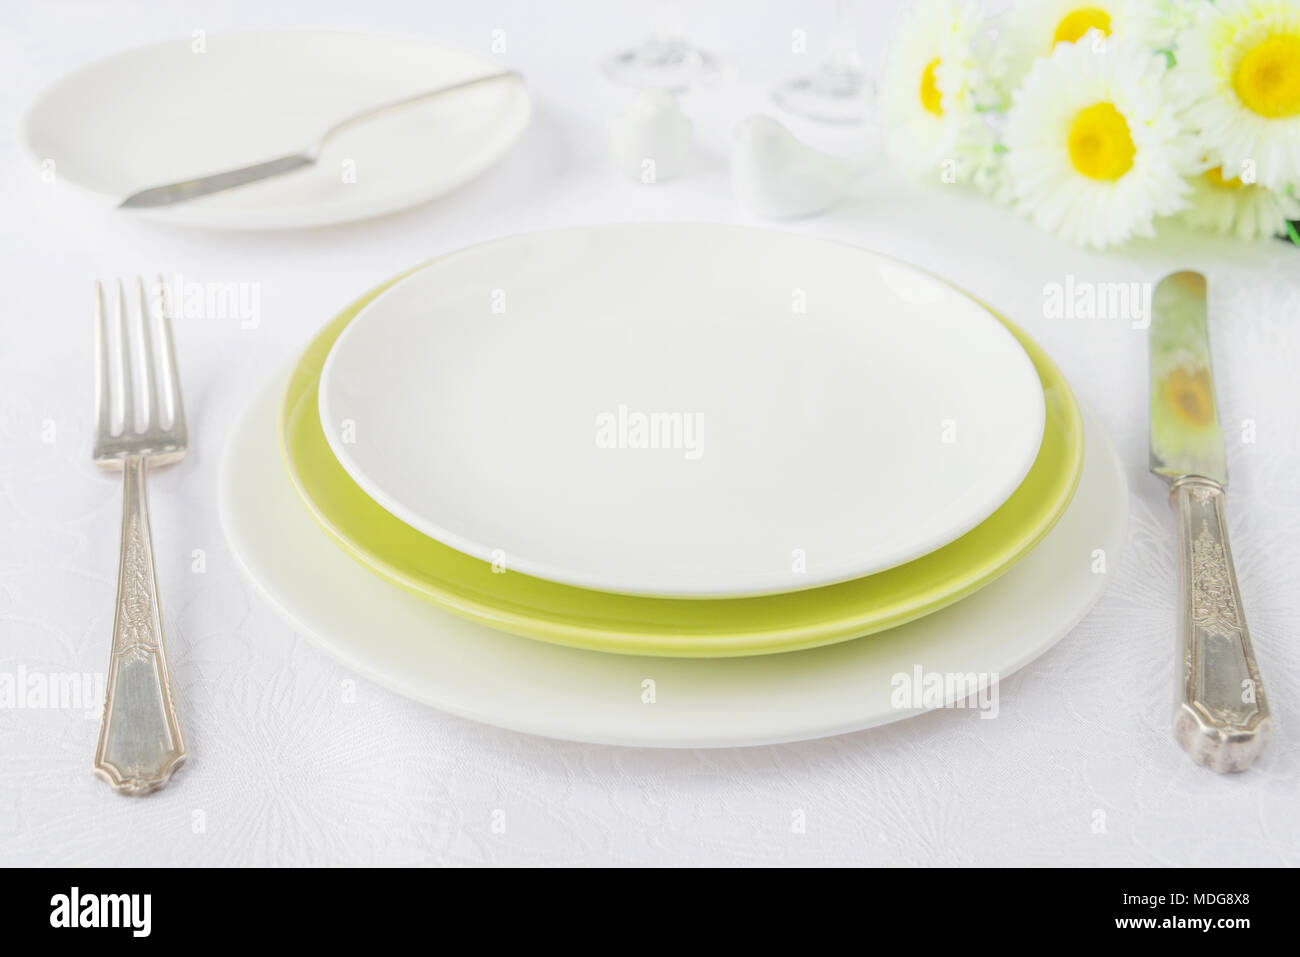 Classic serving for a gala dinner with white and green porcelain plates, silverware and chamomile flowers on a white tablecloth Stock Photo